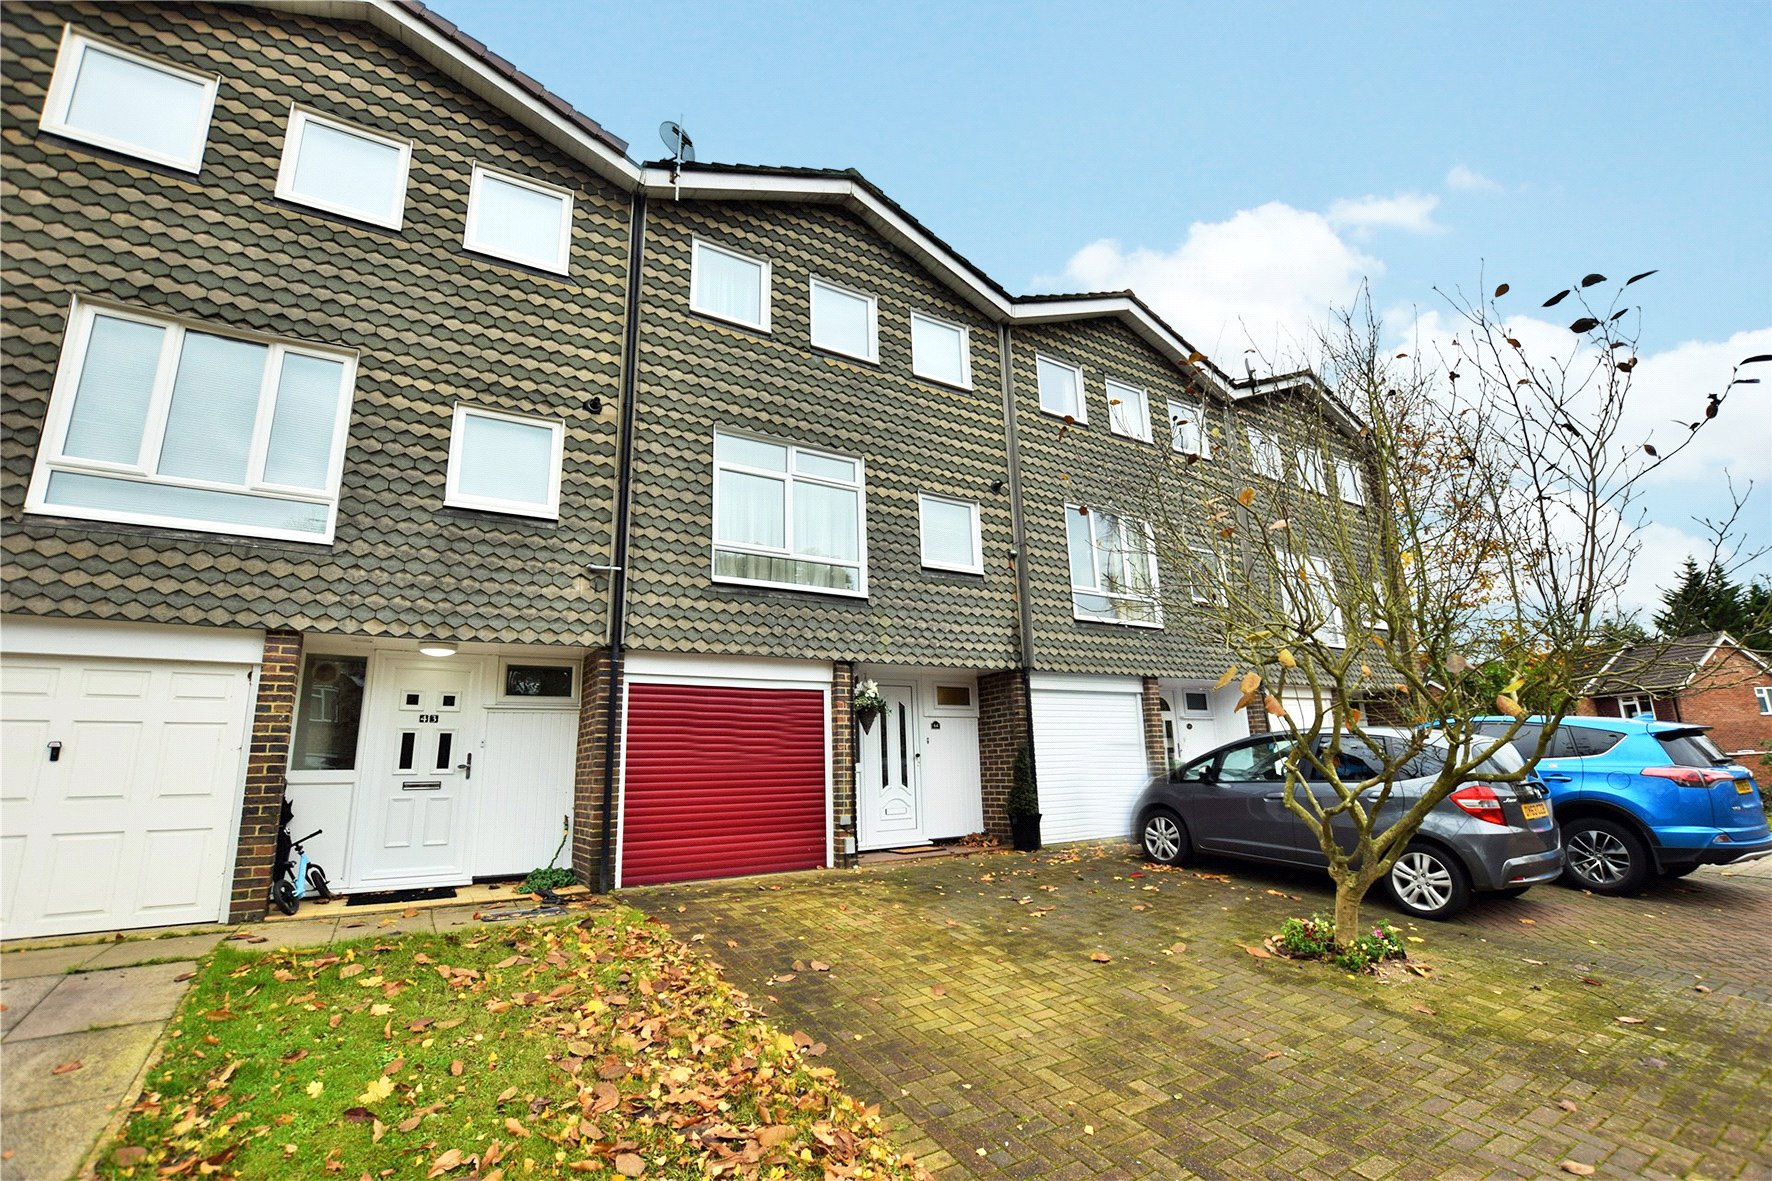 3 Bedrooms Terraced House for sale in Firlands, Bracknell, Berkshire, RG12